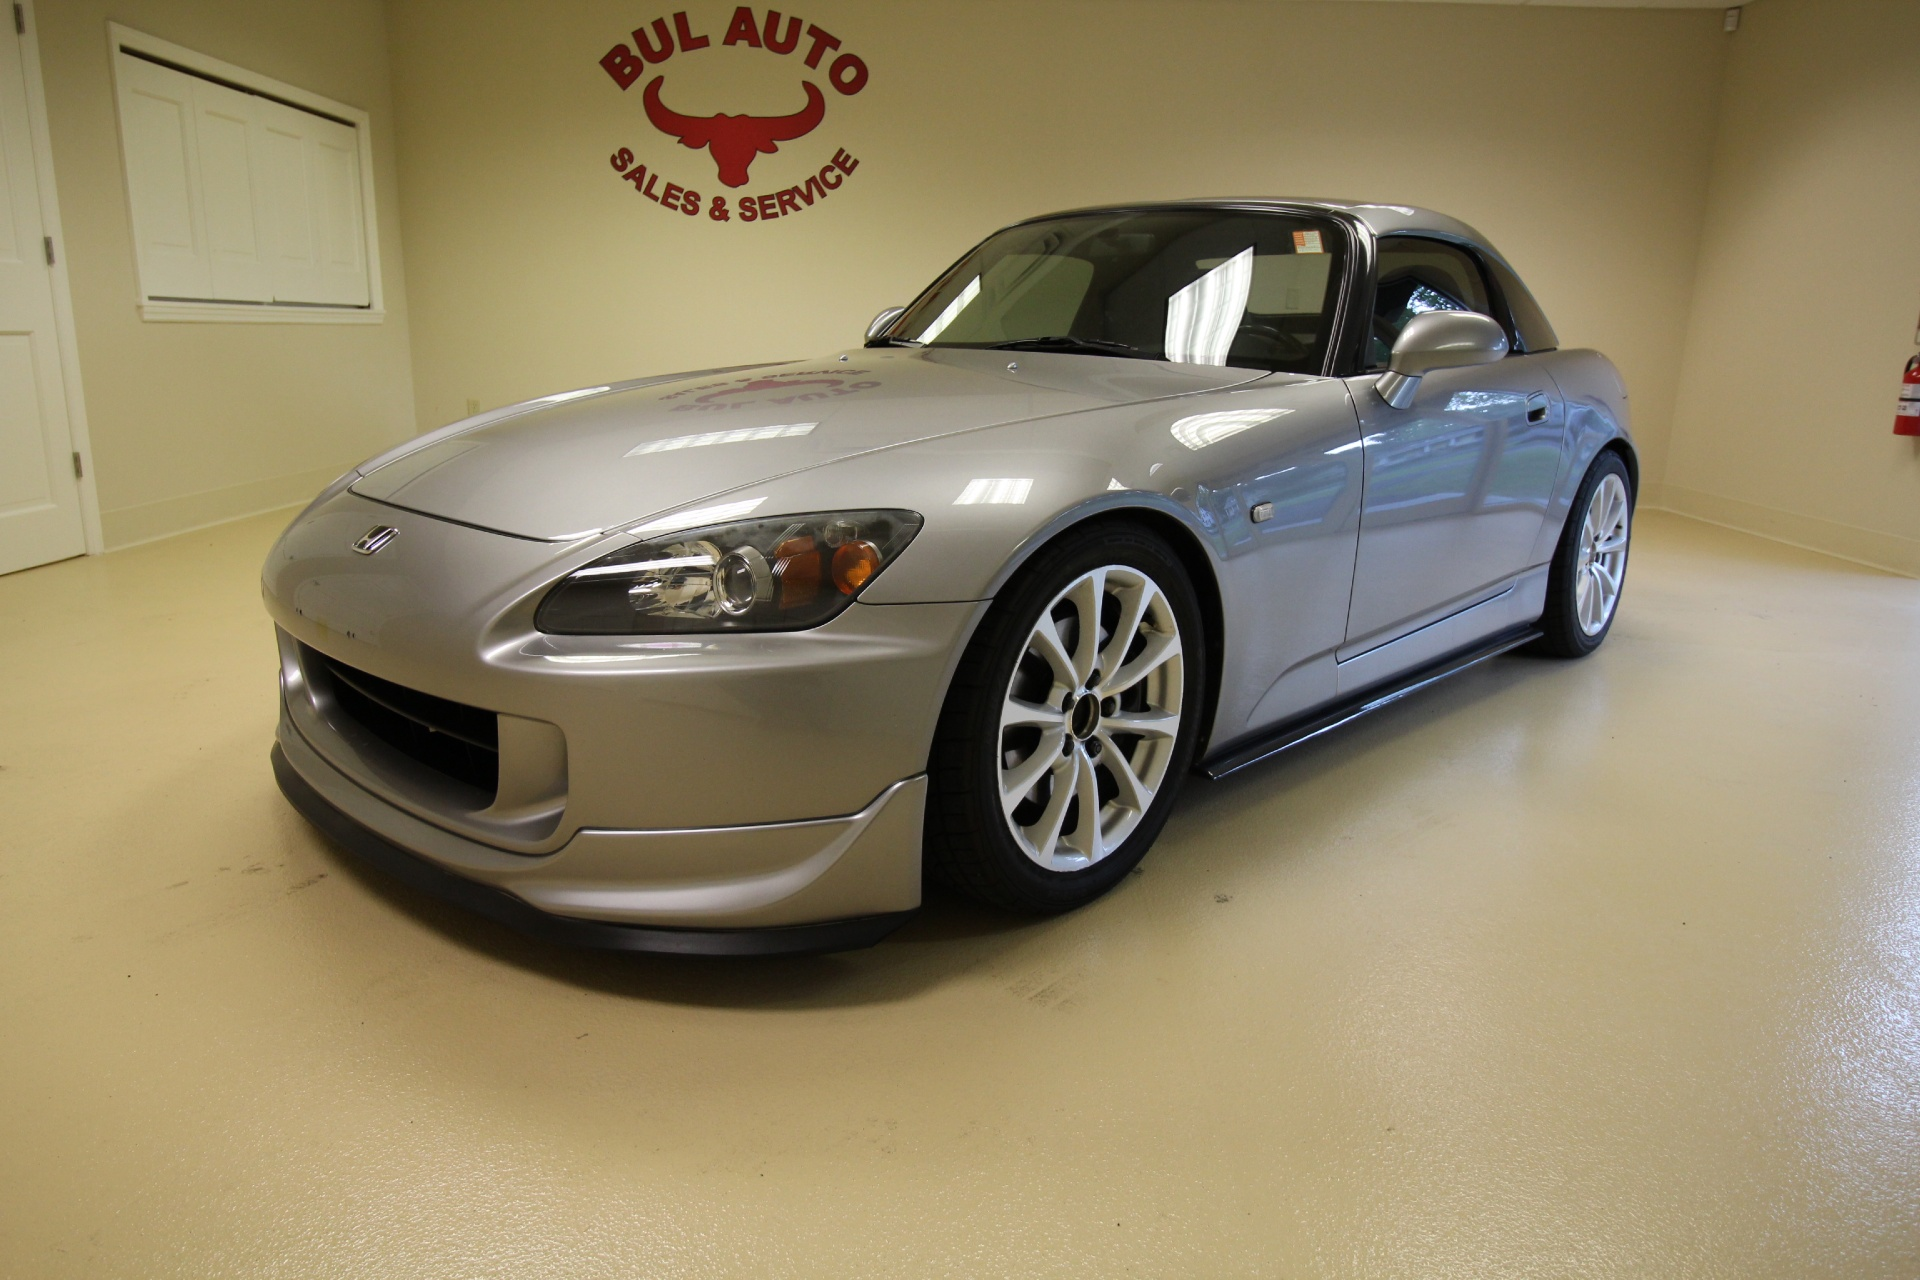 2006 honda s2000 hard top super clean lots of carbon fiber stock 16144 for sale near albany. Black Bedroom Furniture Sets. Home Design Ideas